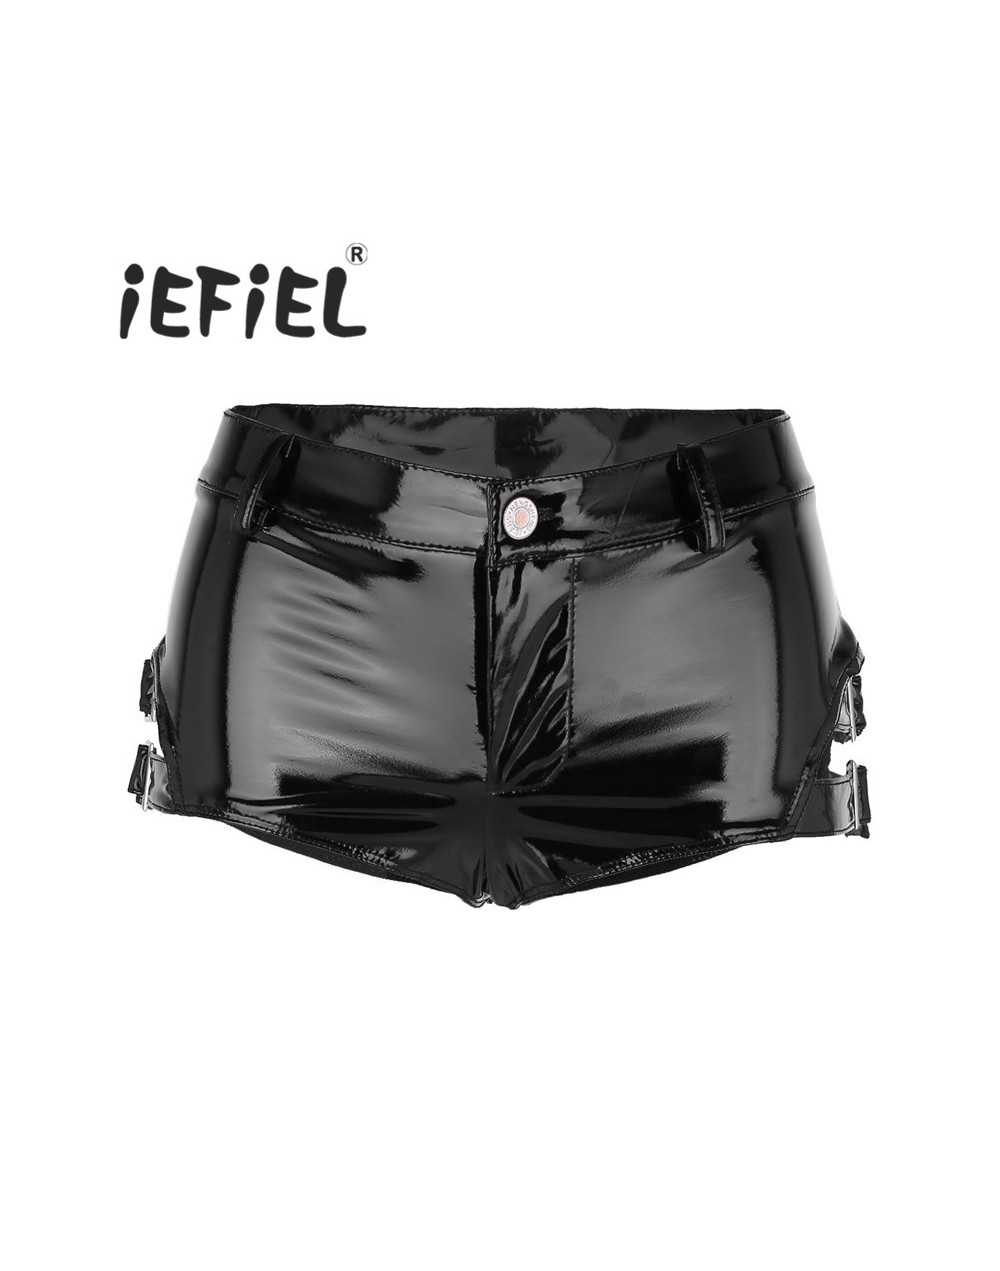 Fashion Women Shorts Wet Look Patent Leather Low Rise Clubwear Mini Shorts Hot Shorts with Buckles Nightwear Clothes - 4L399...